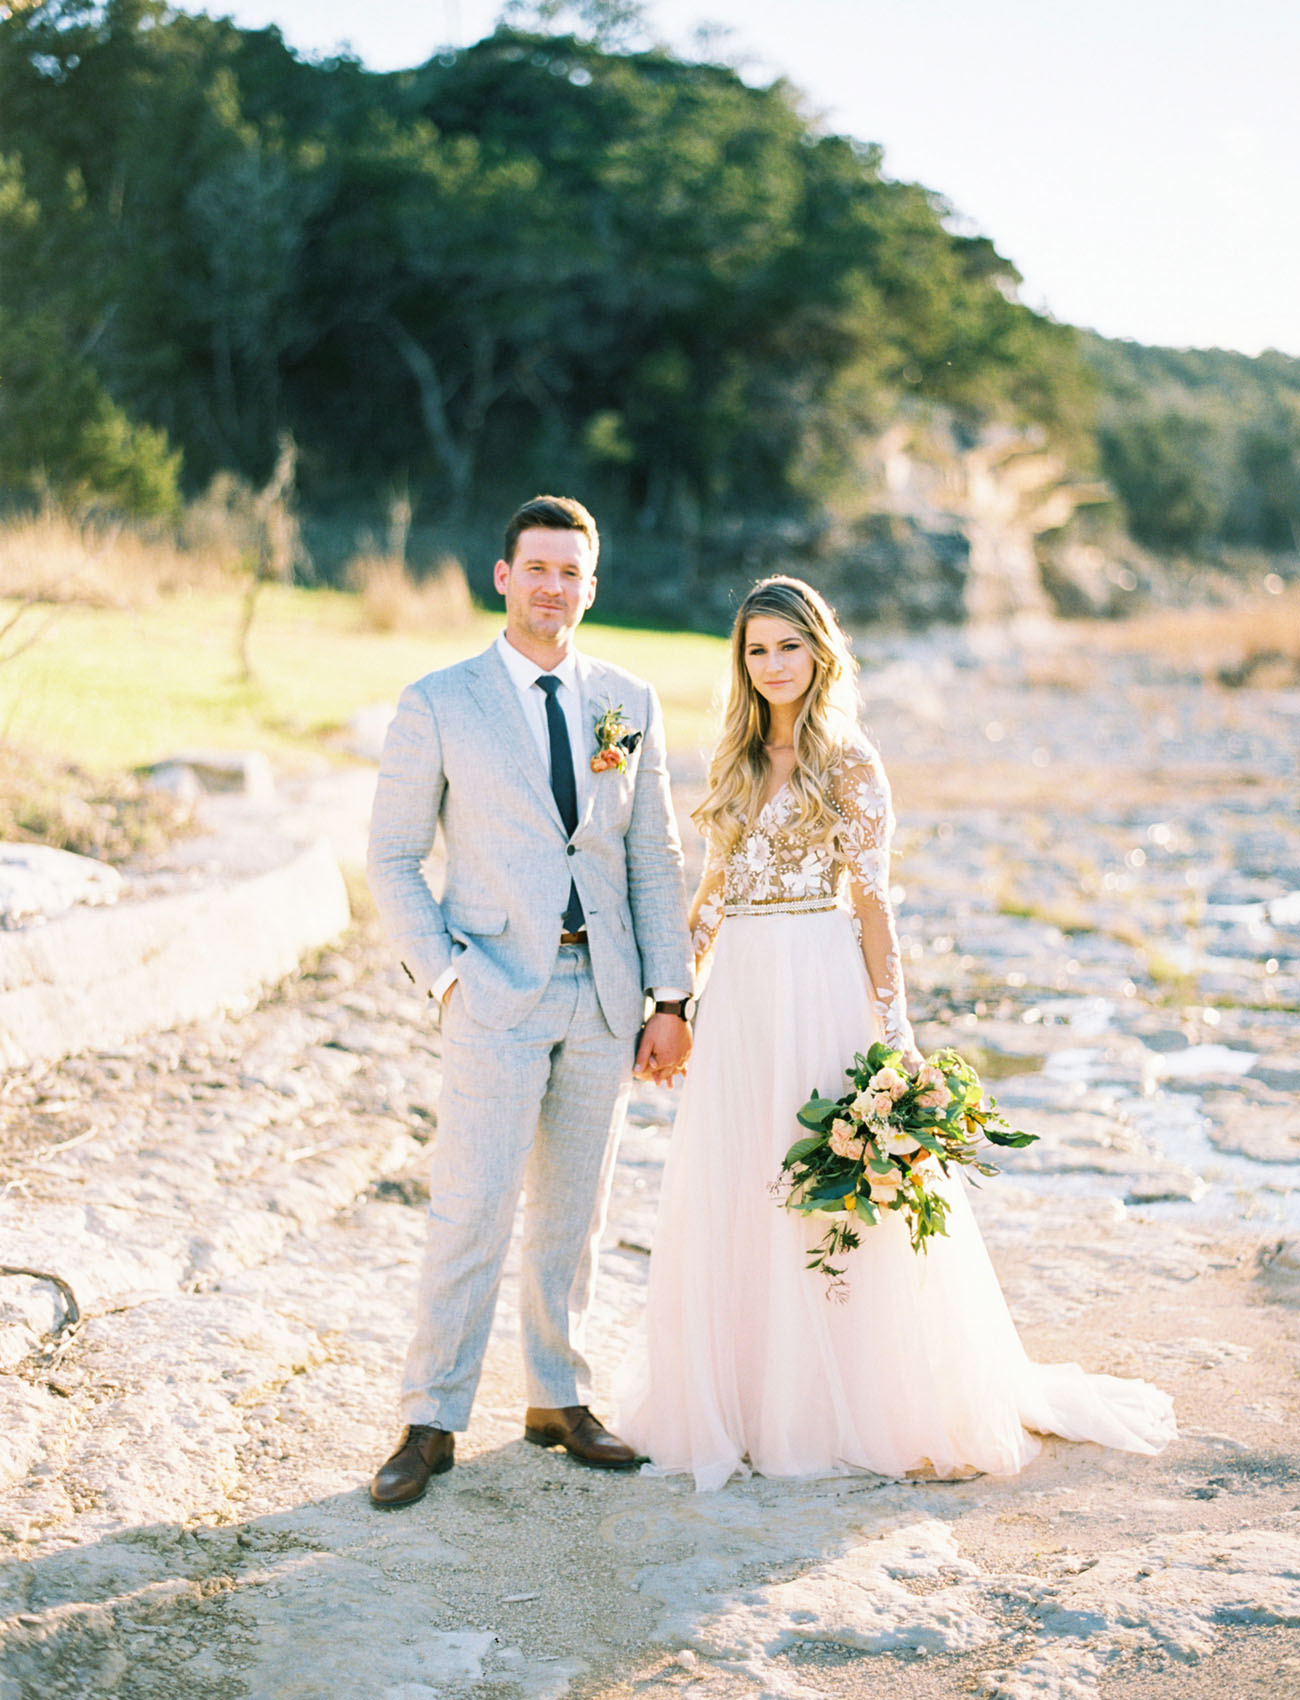 Sweet n Natural Rustic Wedding in the Texas Hill Country Green